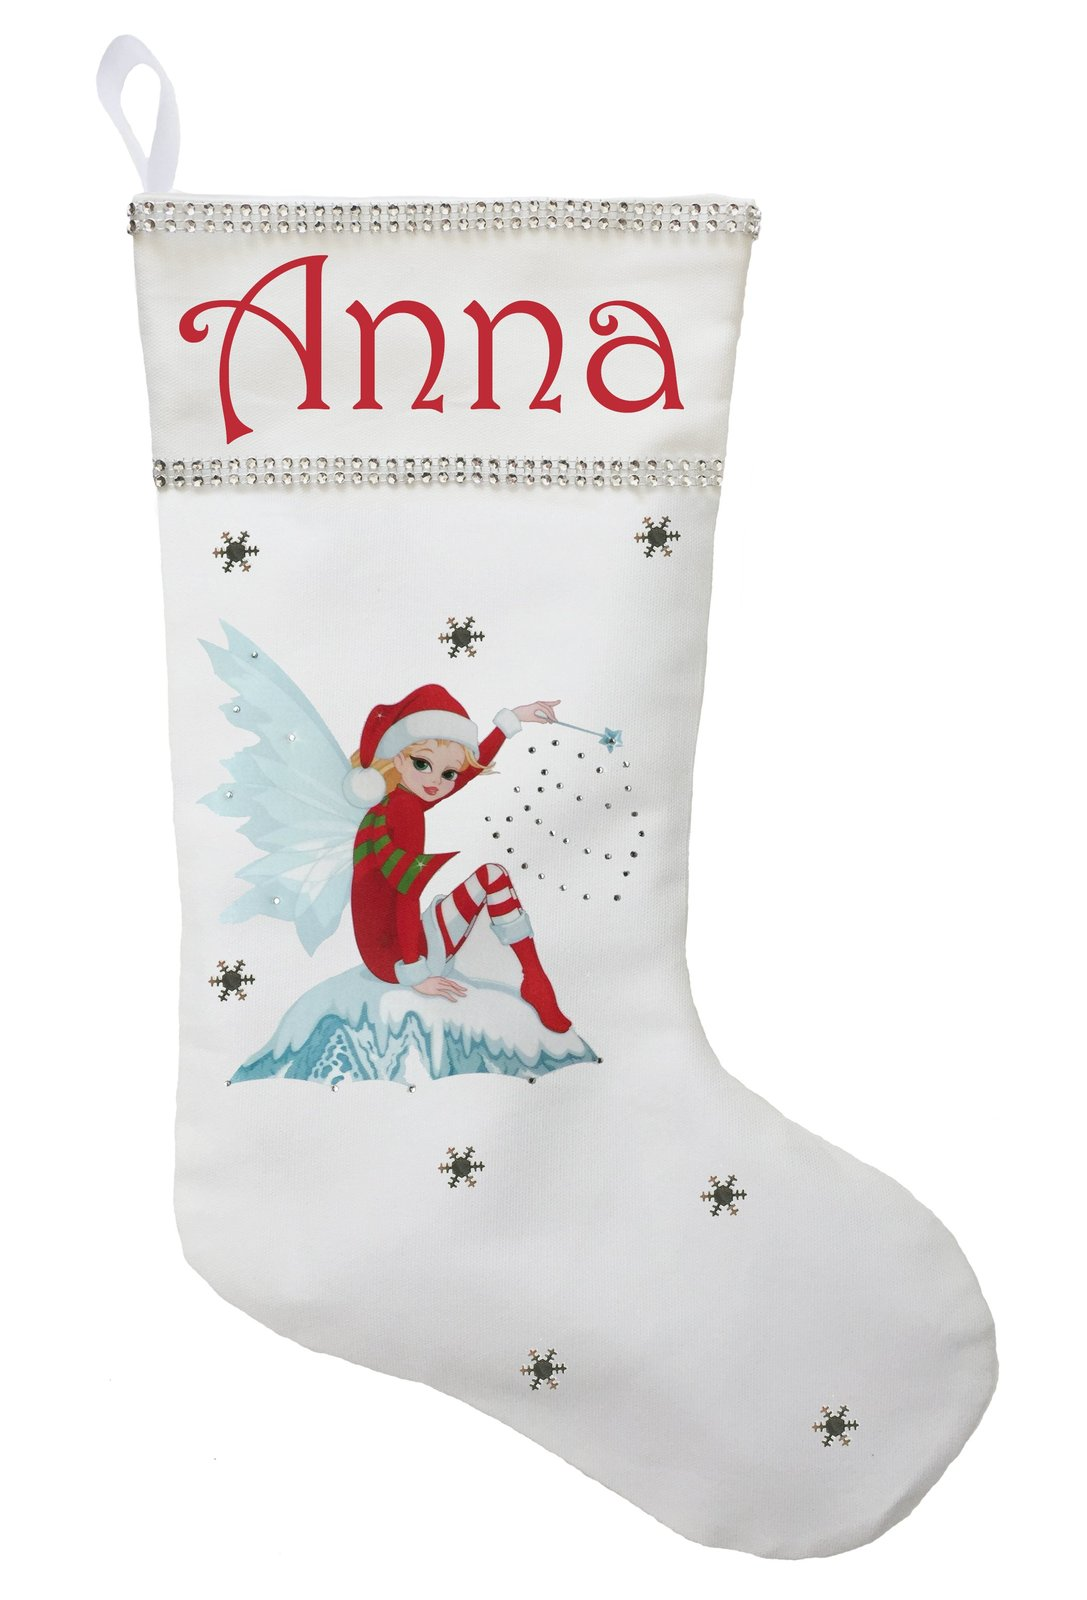 Fairy Christmas Stocking - Personalized and Hand Made Fairy Stocking